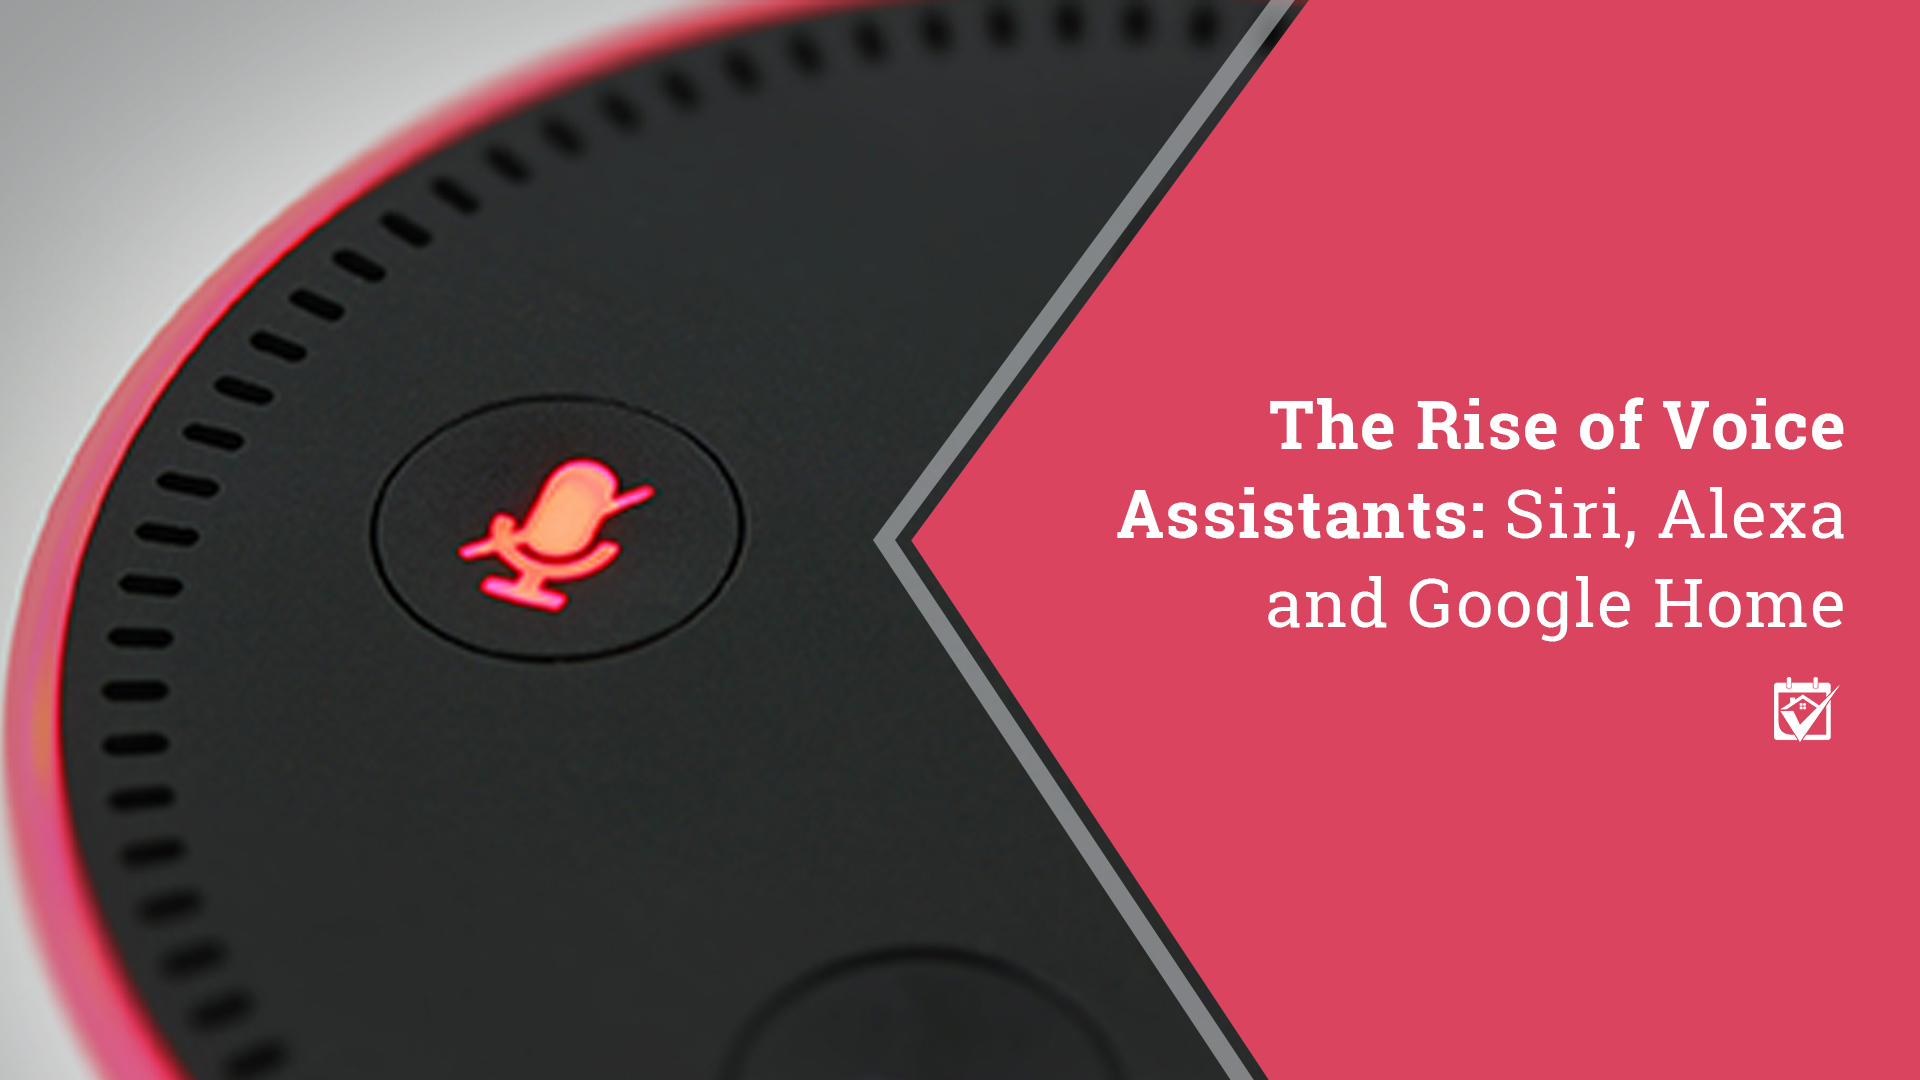 The Rise of Voice Assistants